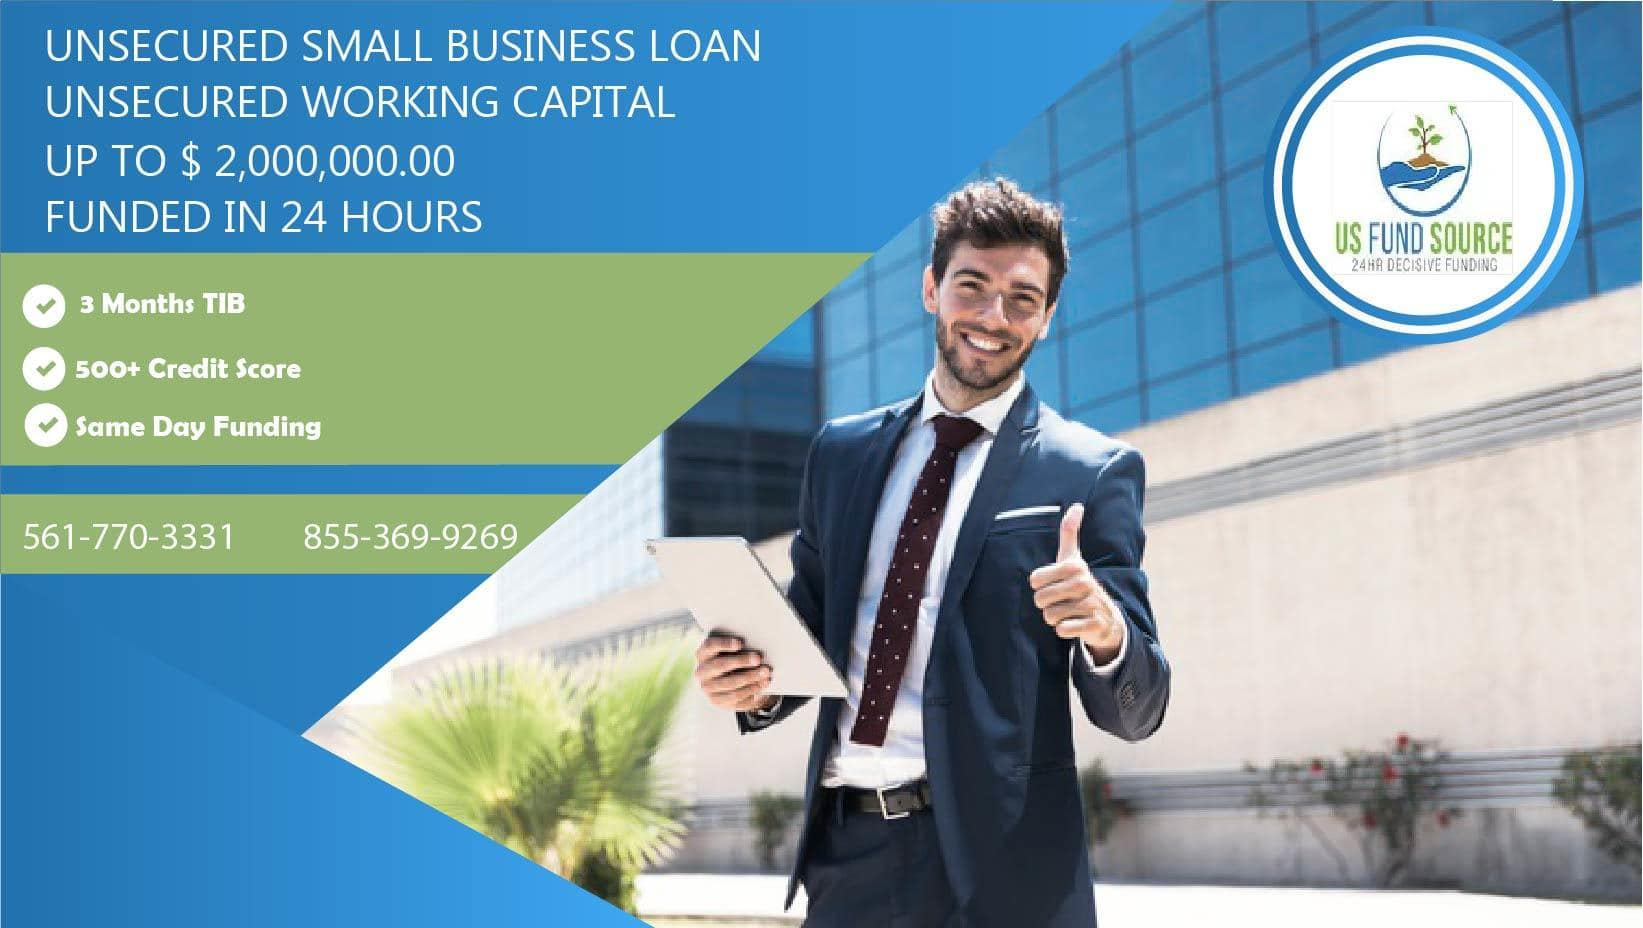 Unsecured Small Business Loan | Unsecured Small Business Loans